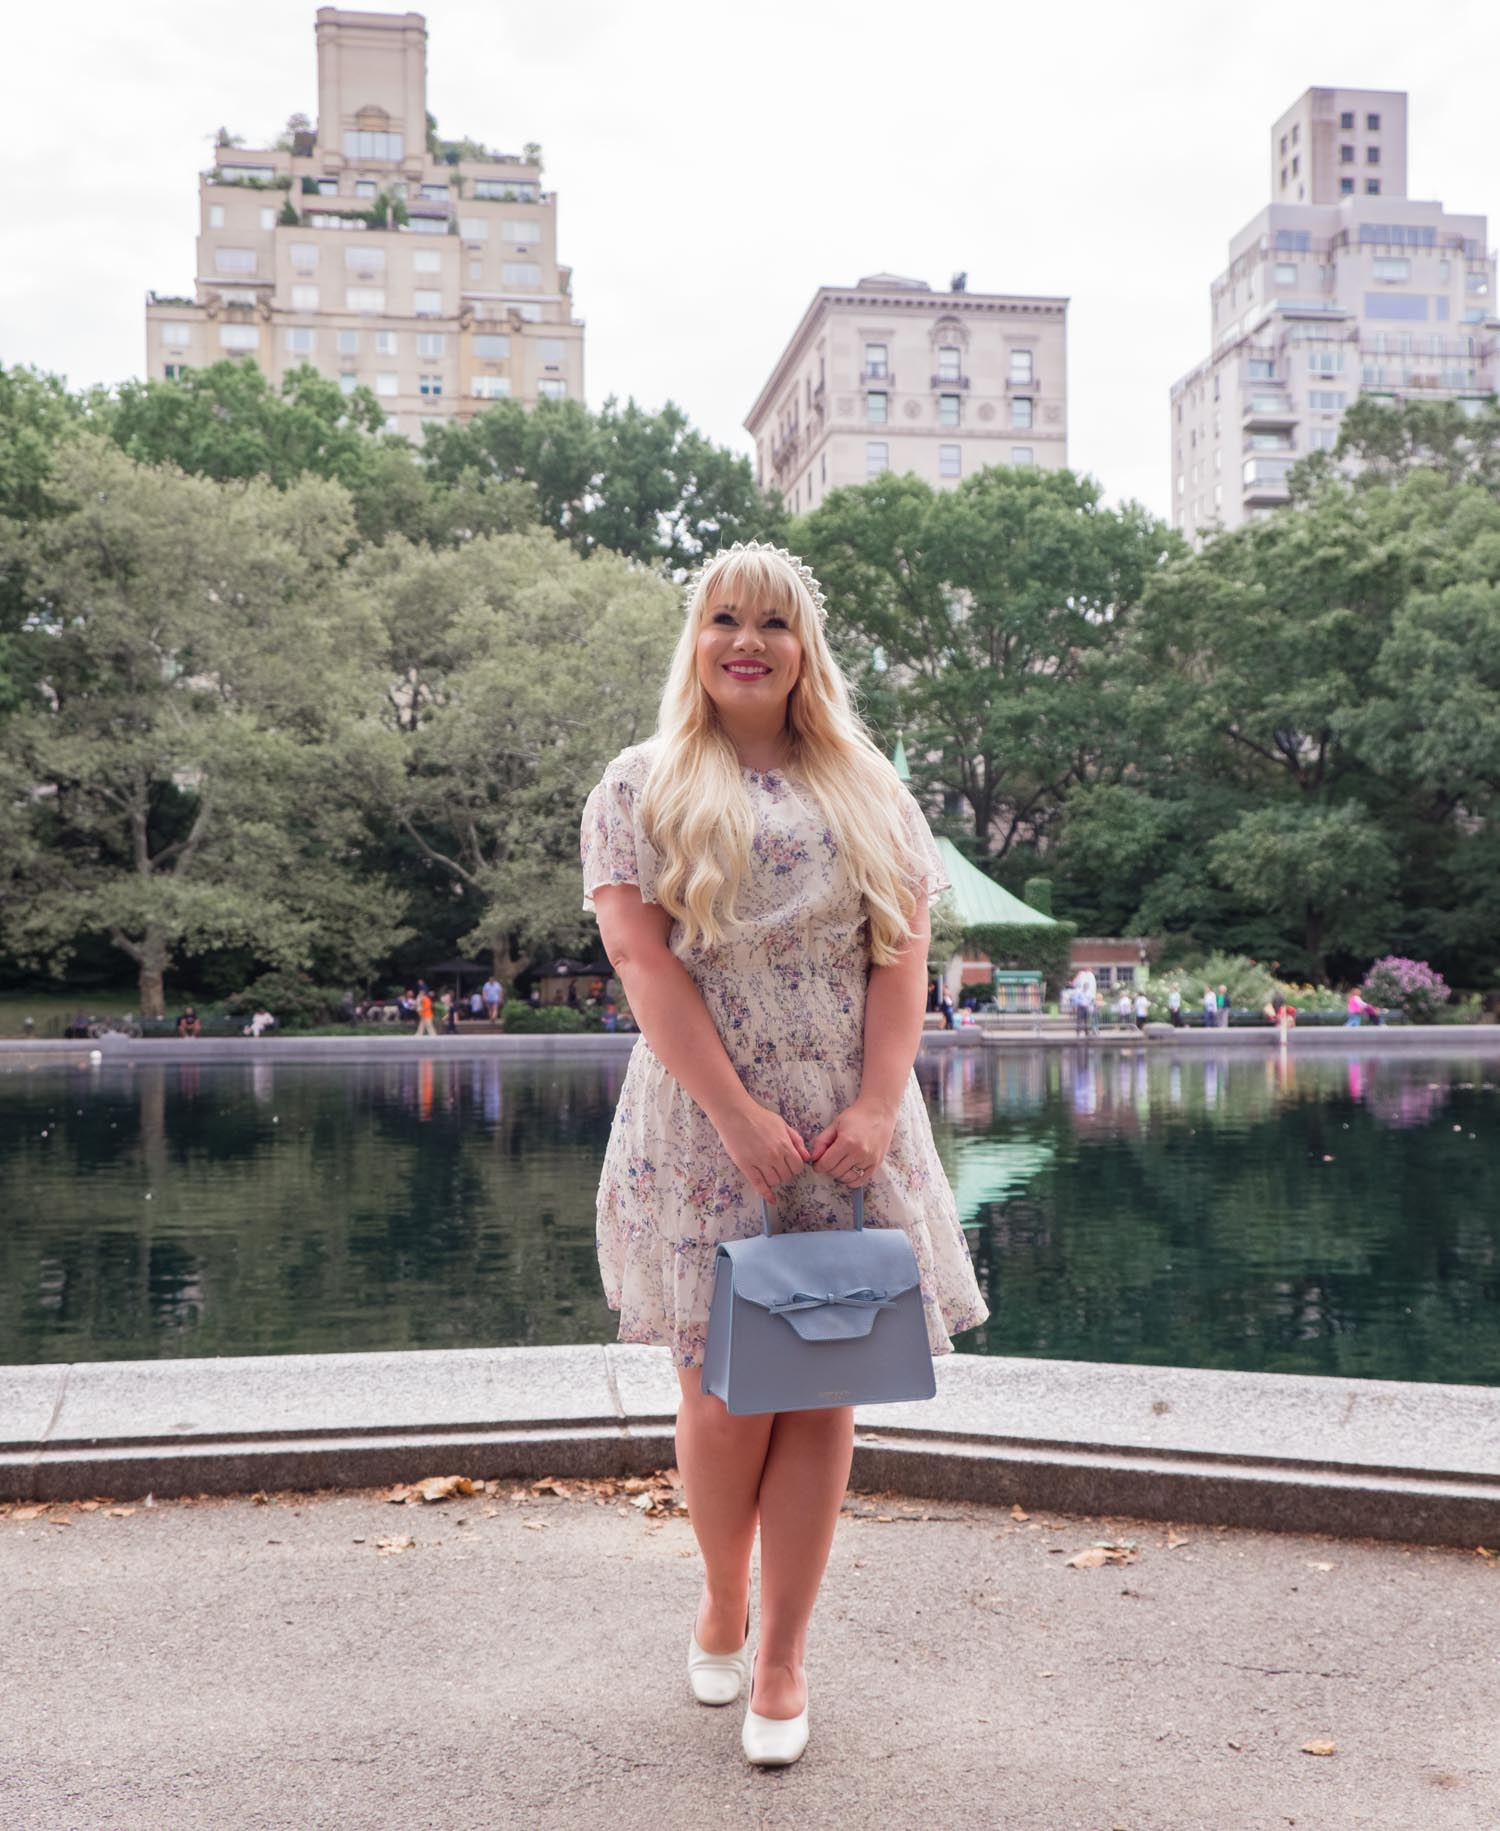 Elizabeth Hugen of Lizzie in Lace wears the Elliatt Wish dress to NYFW!